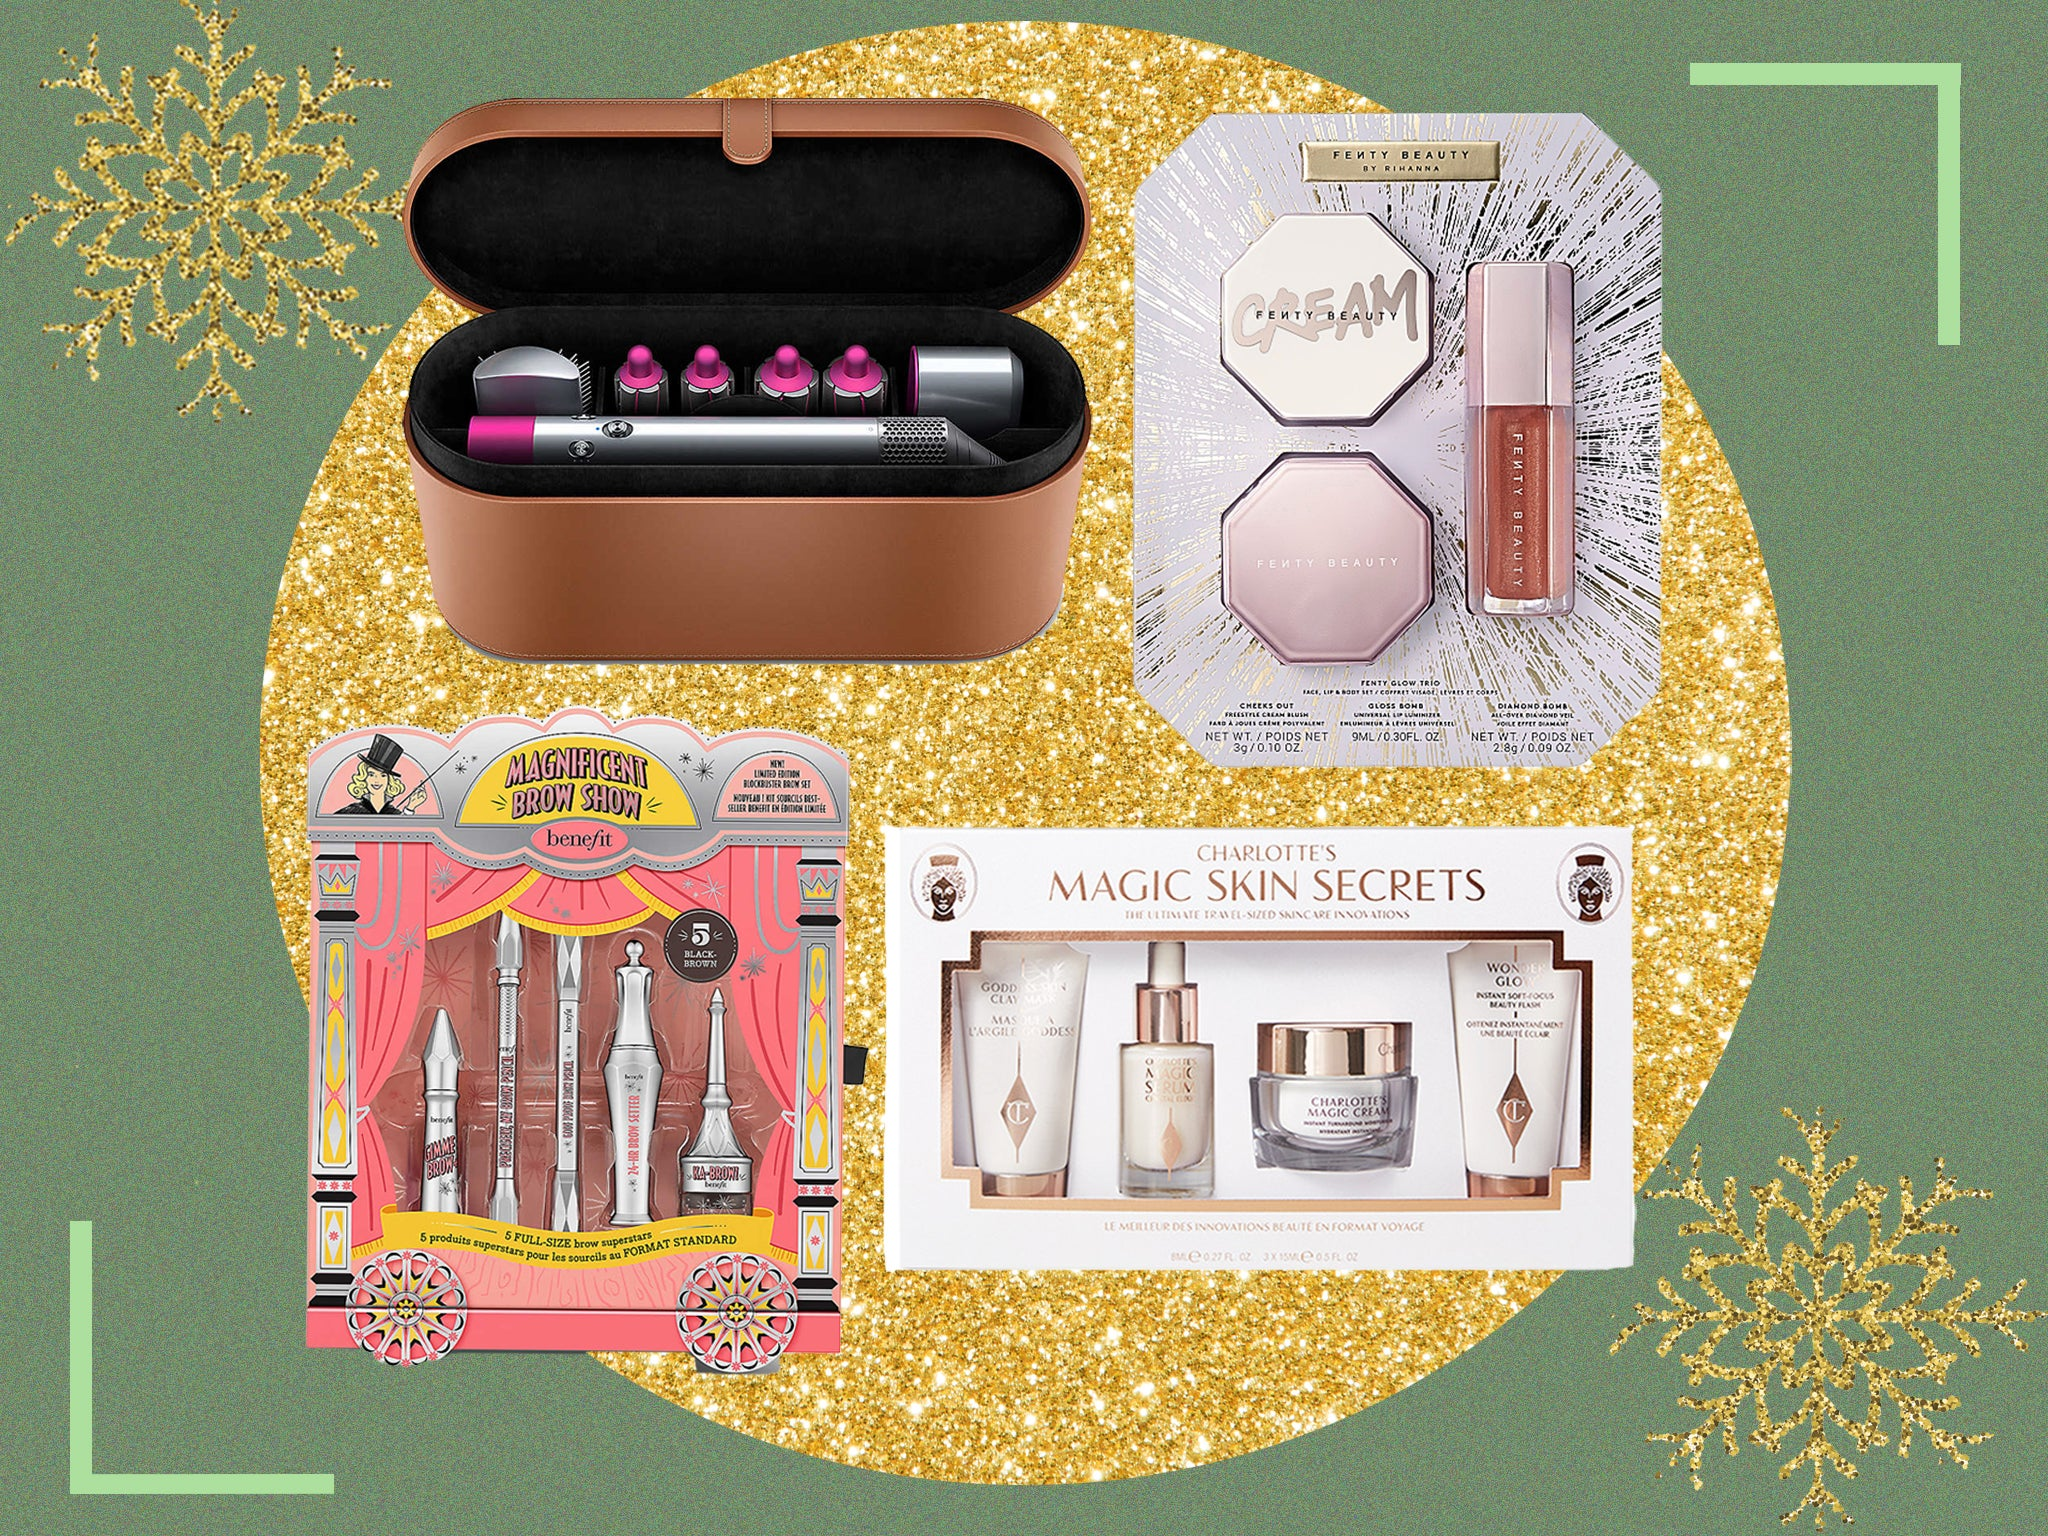 Best Beauty Gift Sets 2020 Huda Beauty Dyson Charlotte Tilbury And More The Independent